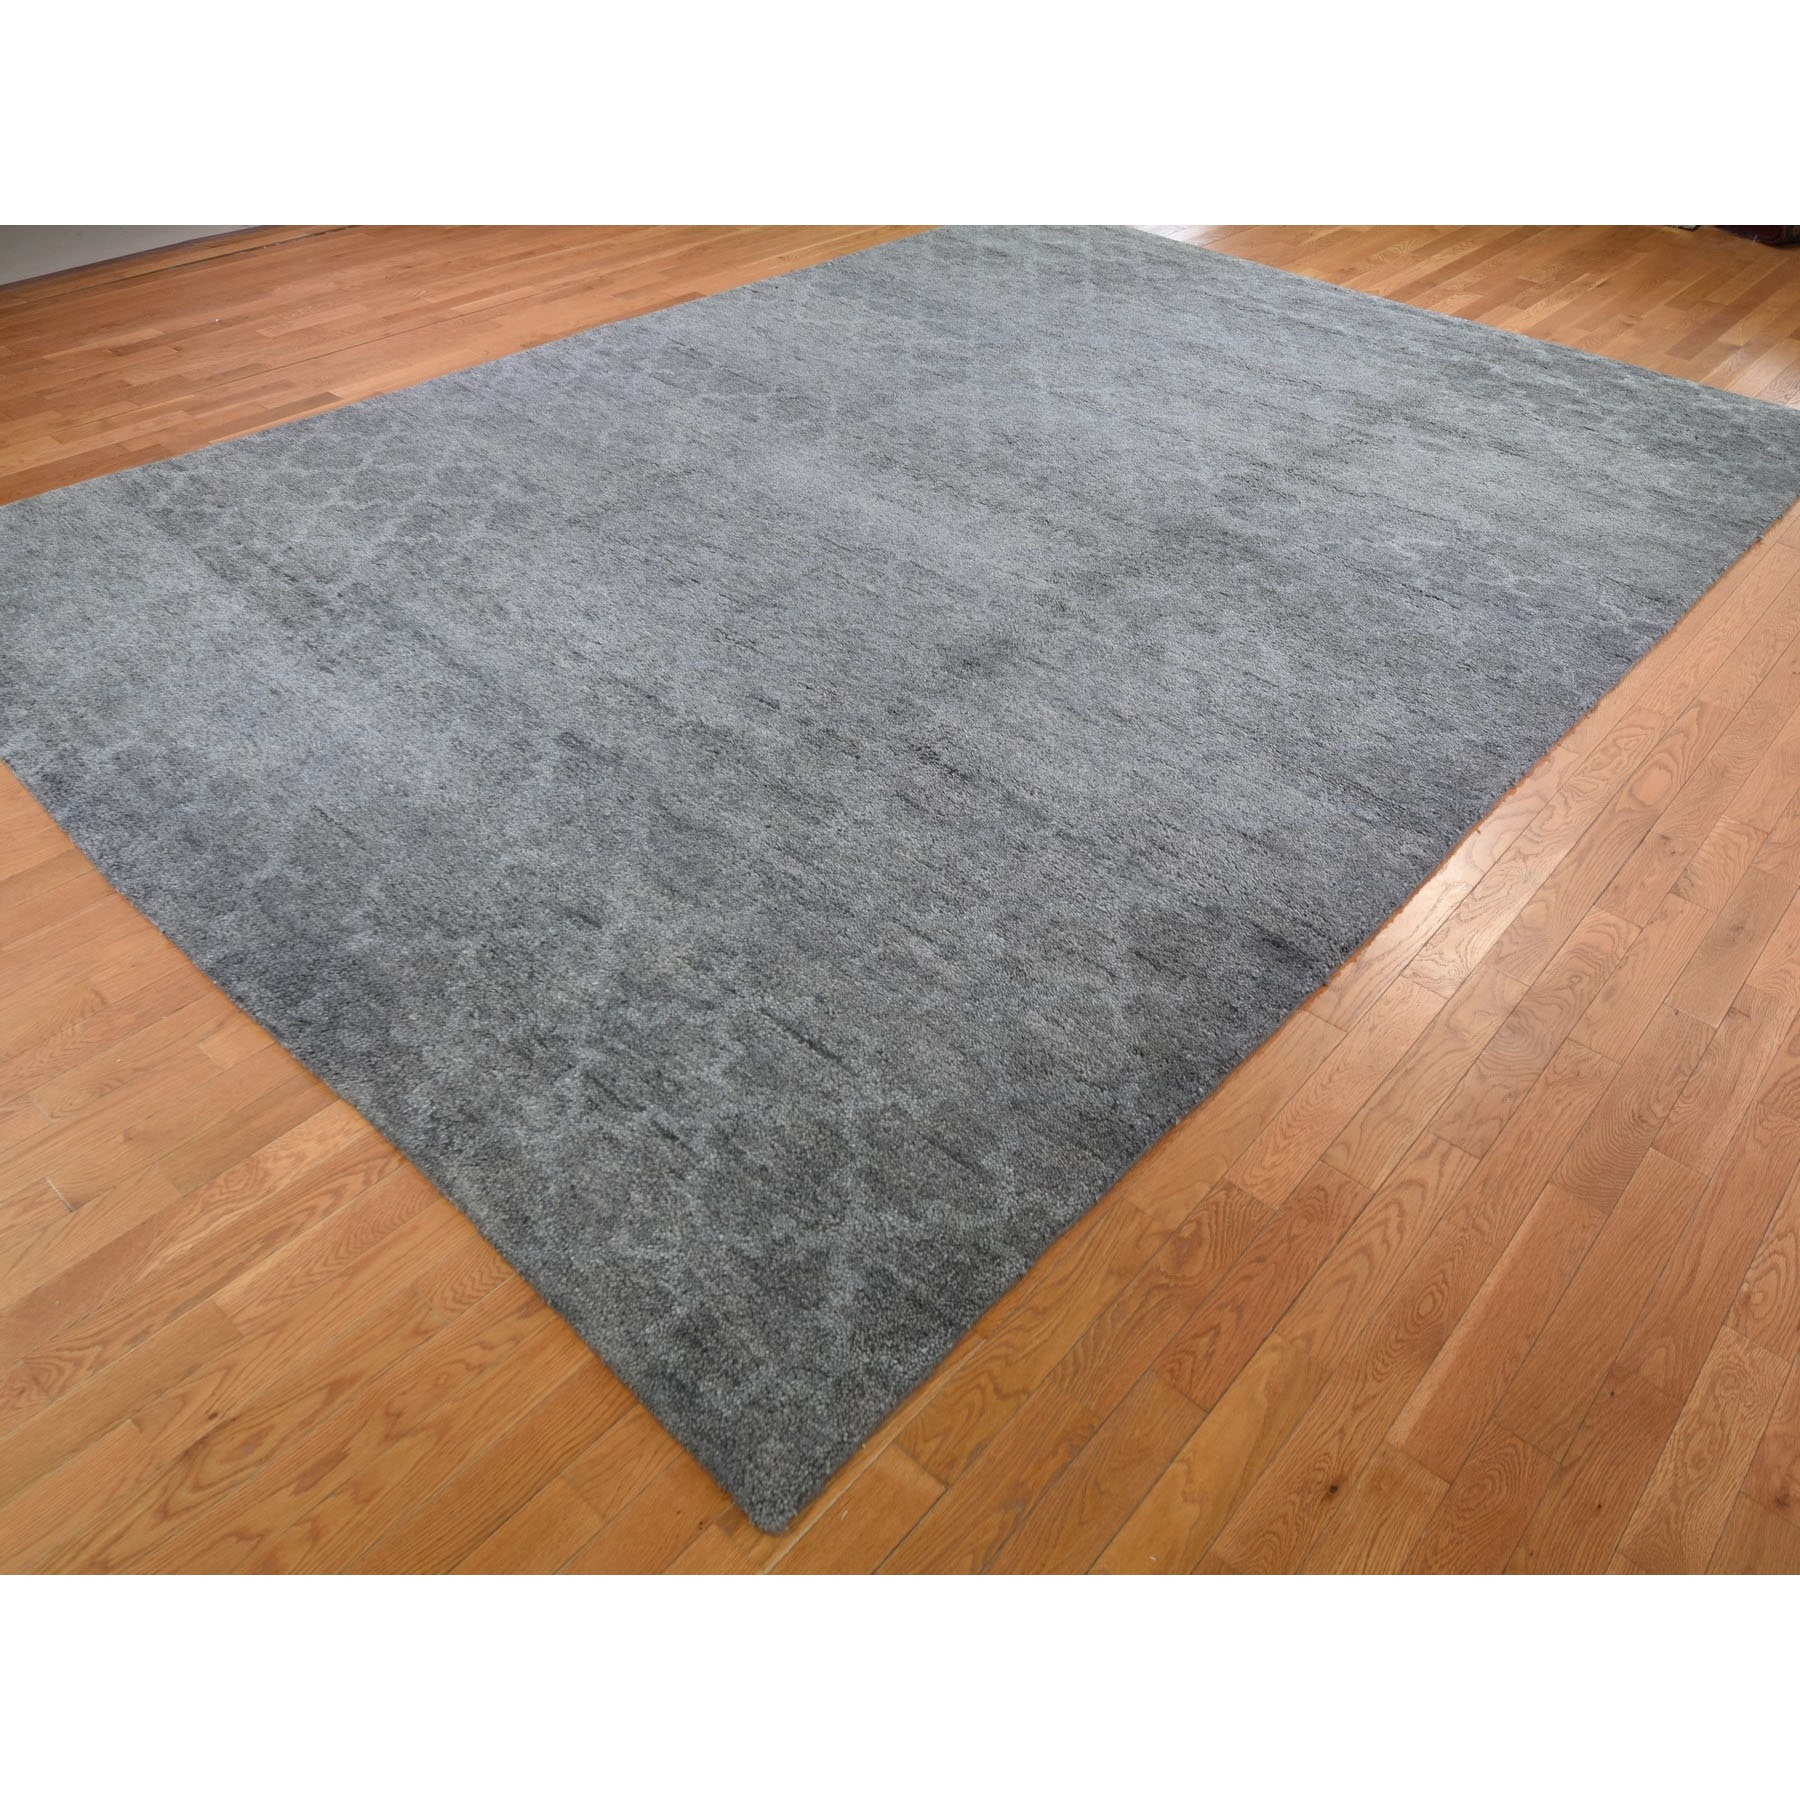 10'x14' Hand Knotted Pure Wool Grey Moroccan Berber Thick and Plush Oriental Rug